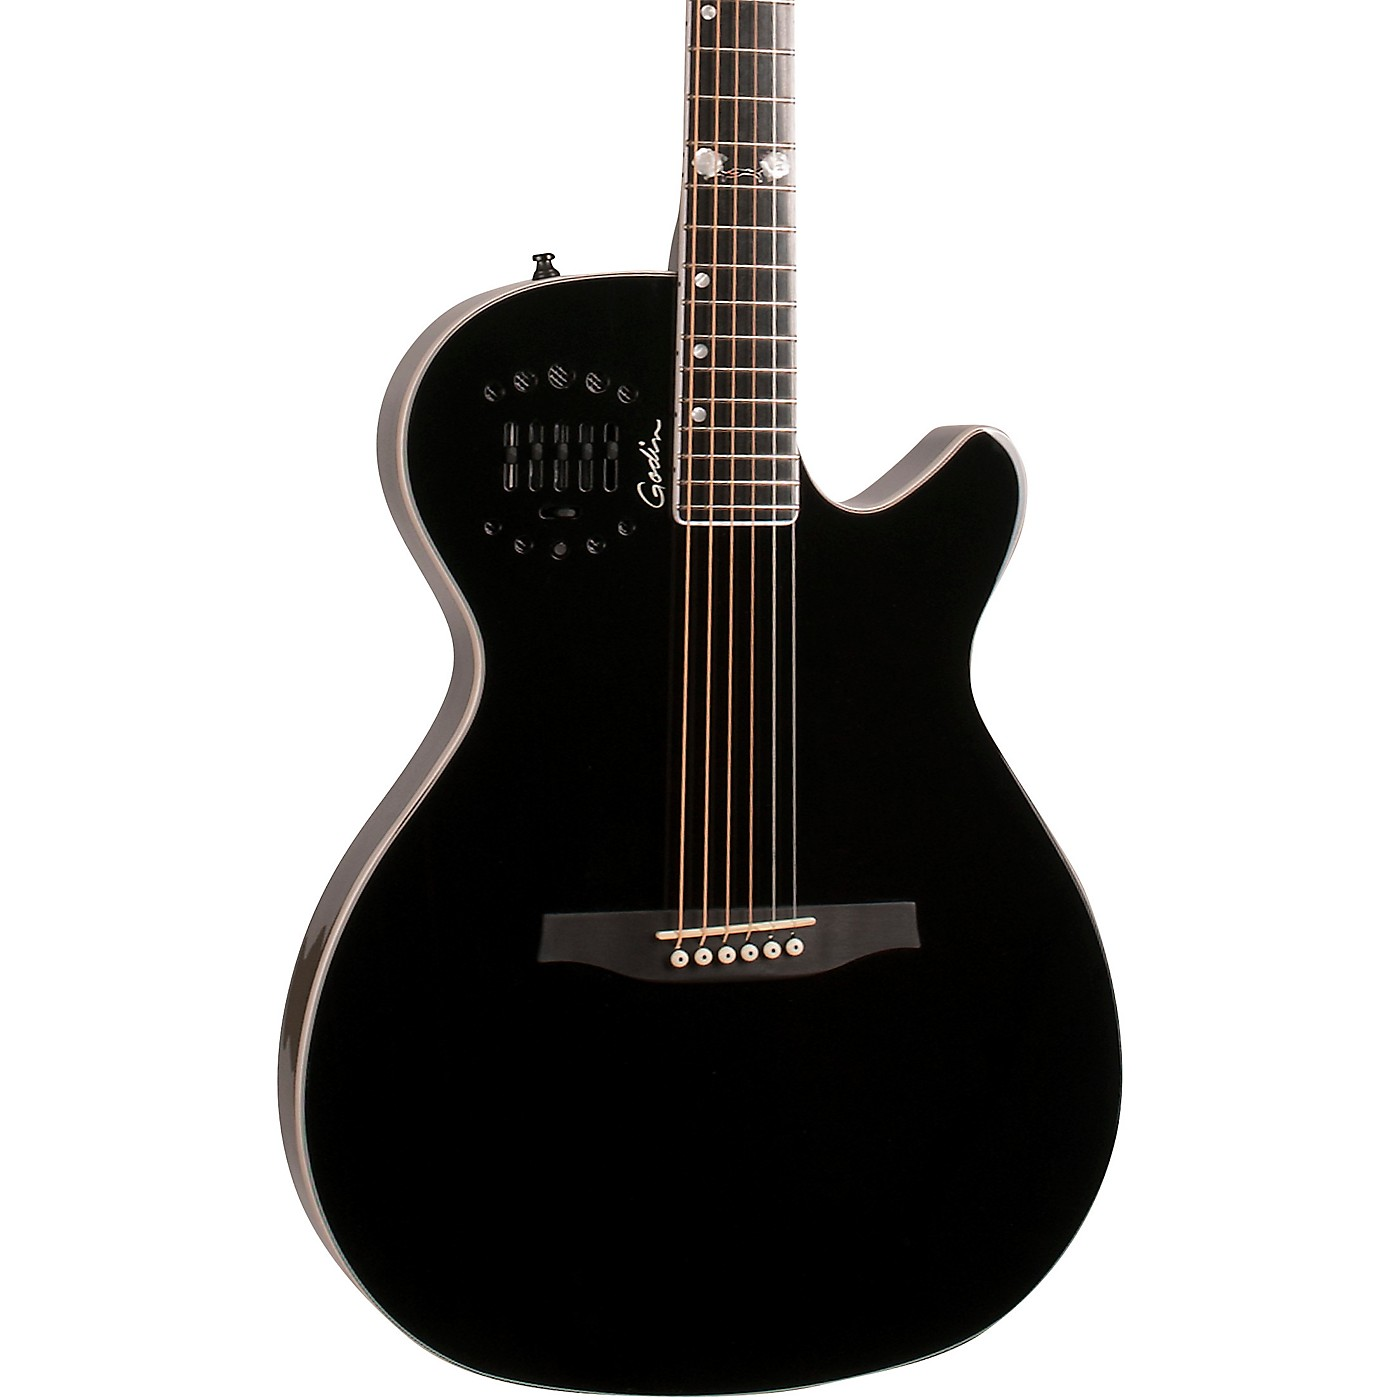 Godin Multiac Steel Doyle Dykes Signature Edition HG Acoustic-Electric Guitar thumbnail